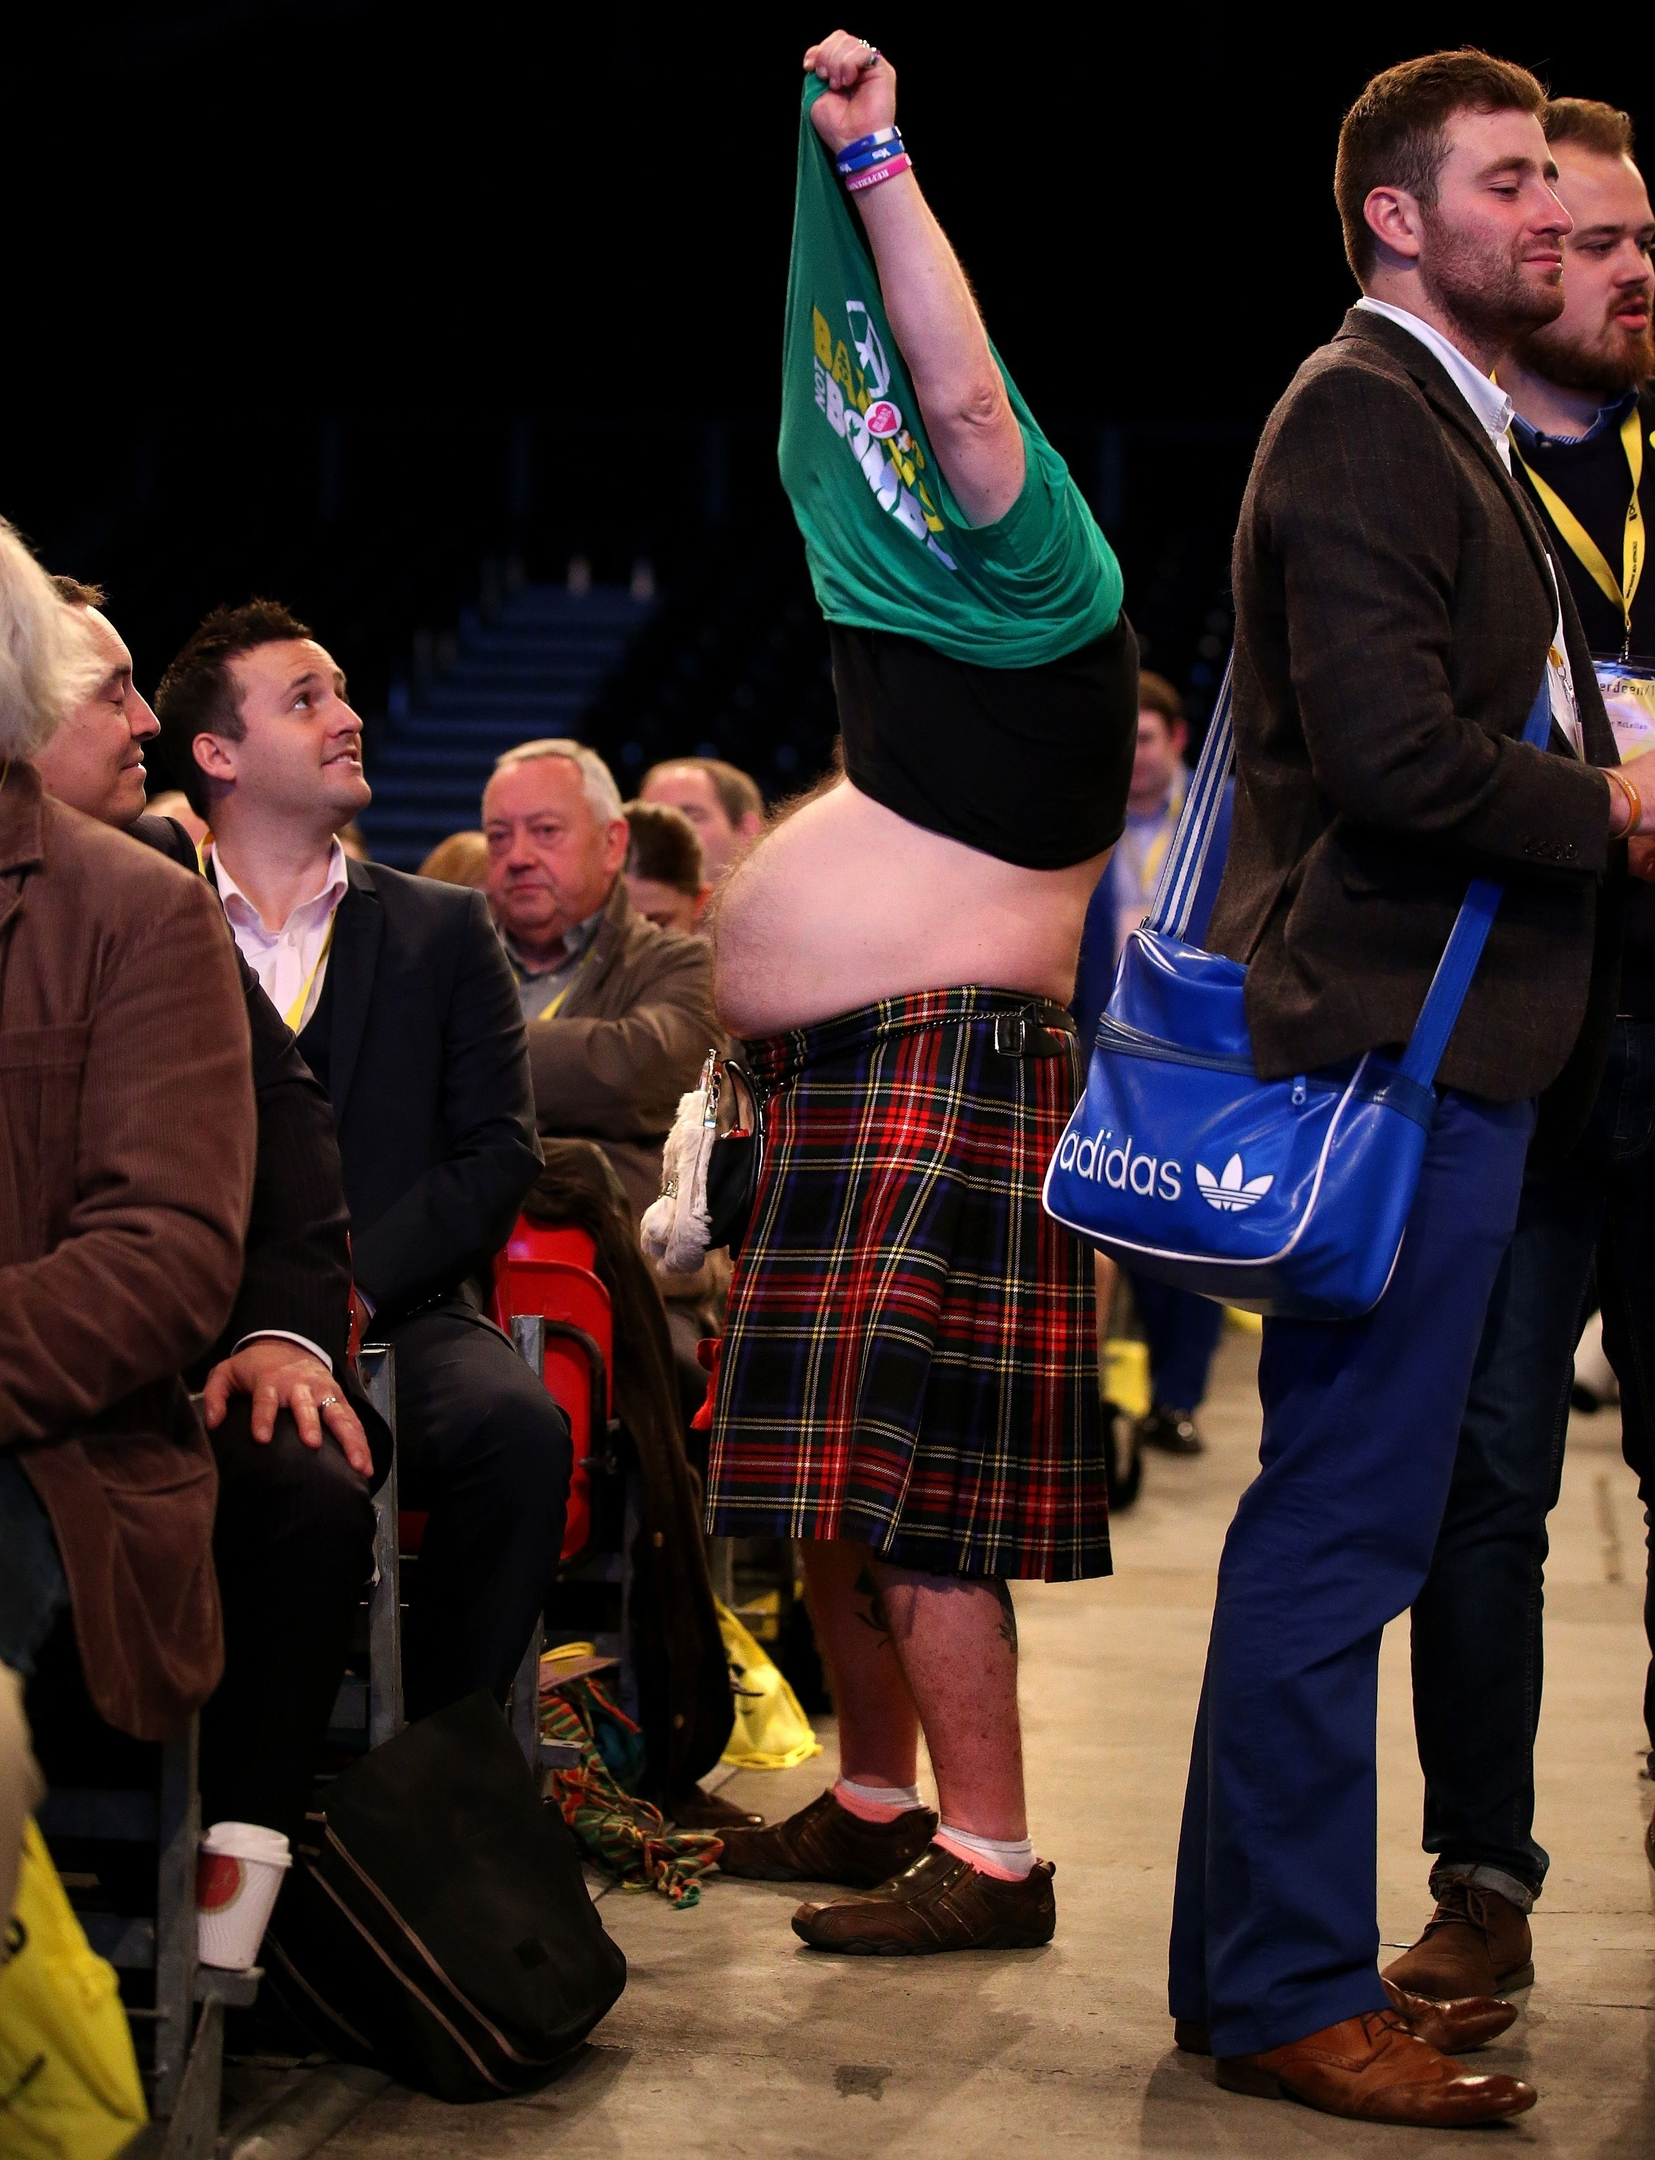 SNP supporter Steve Davies changing his t-shirt in the conference hall at the SNP National Conference